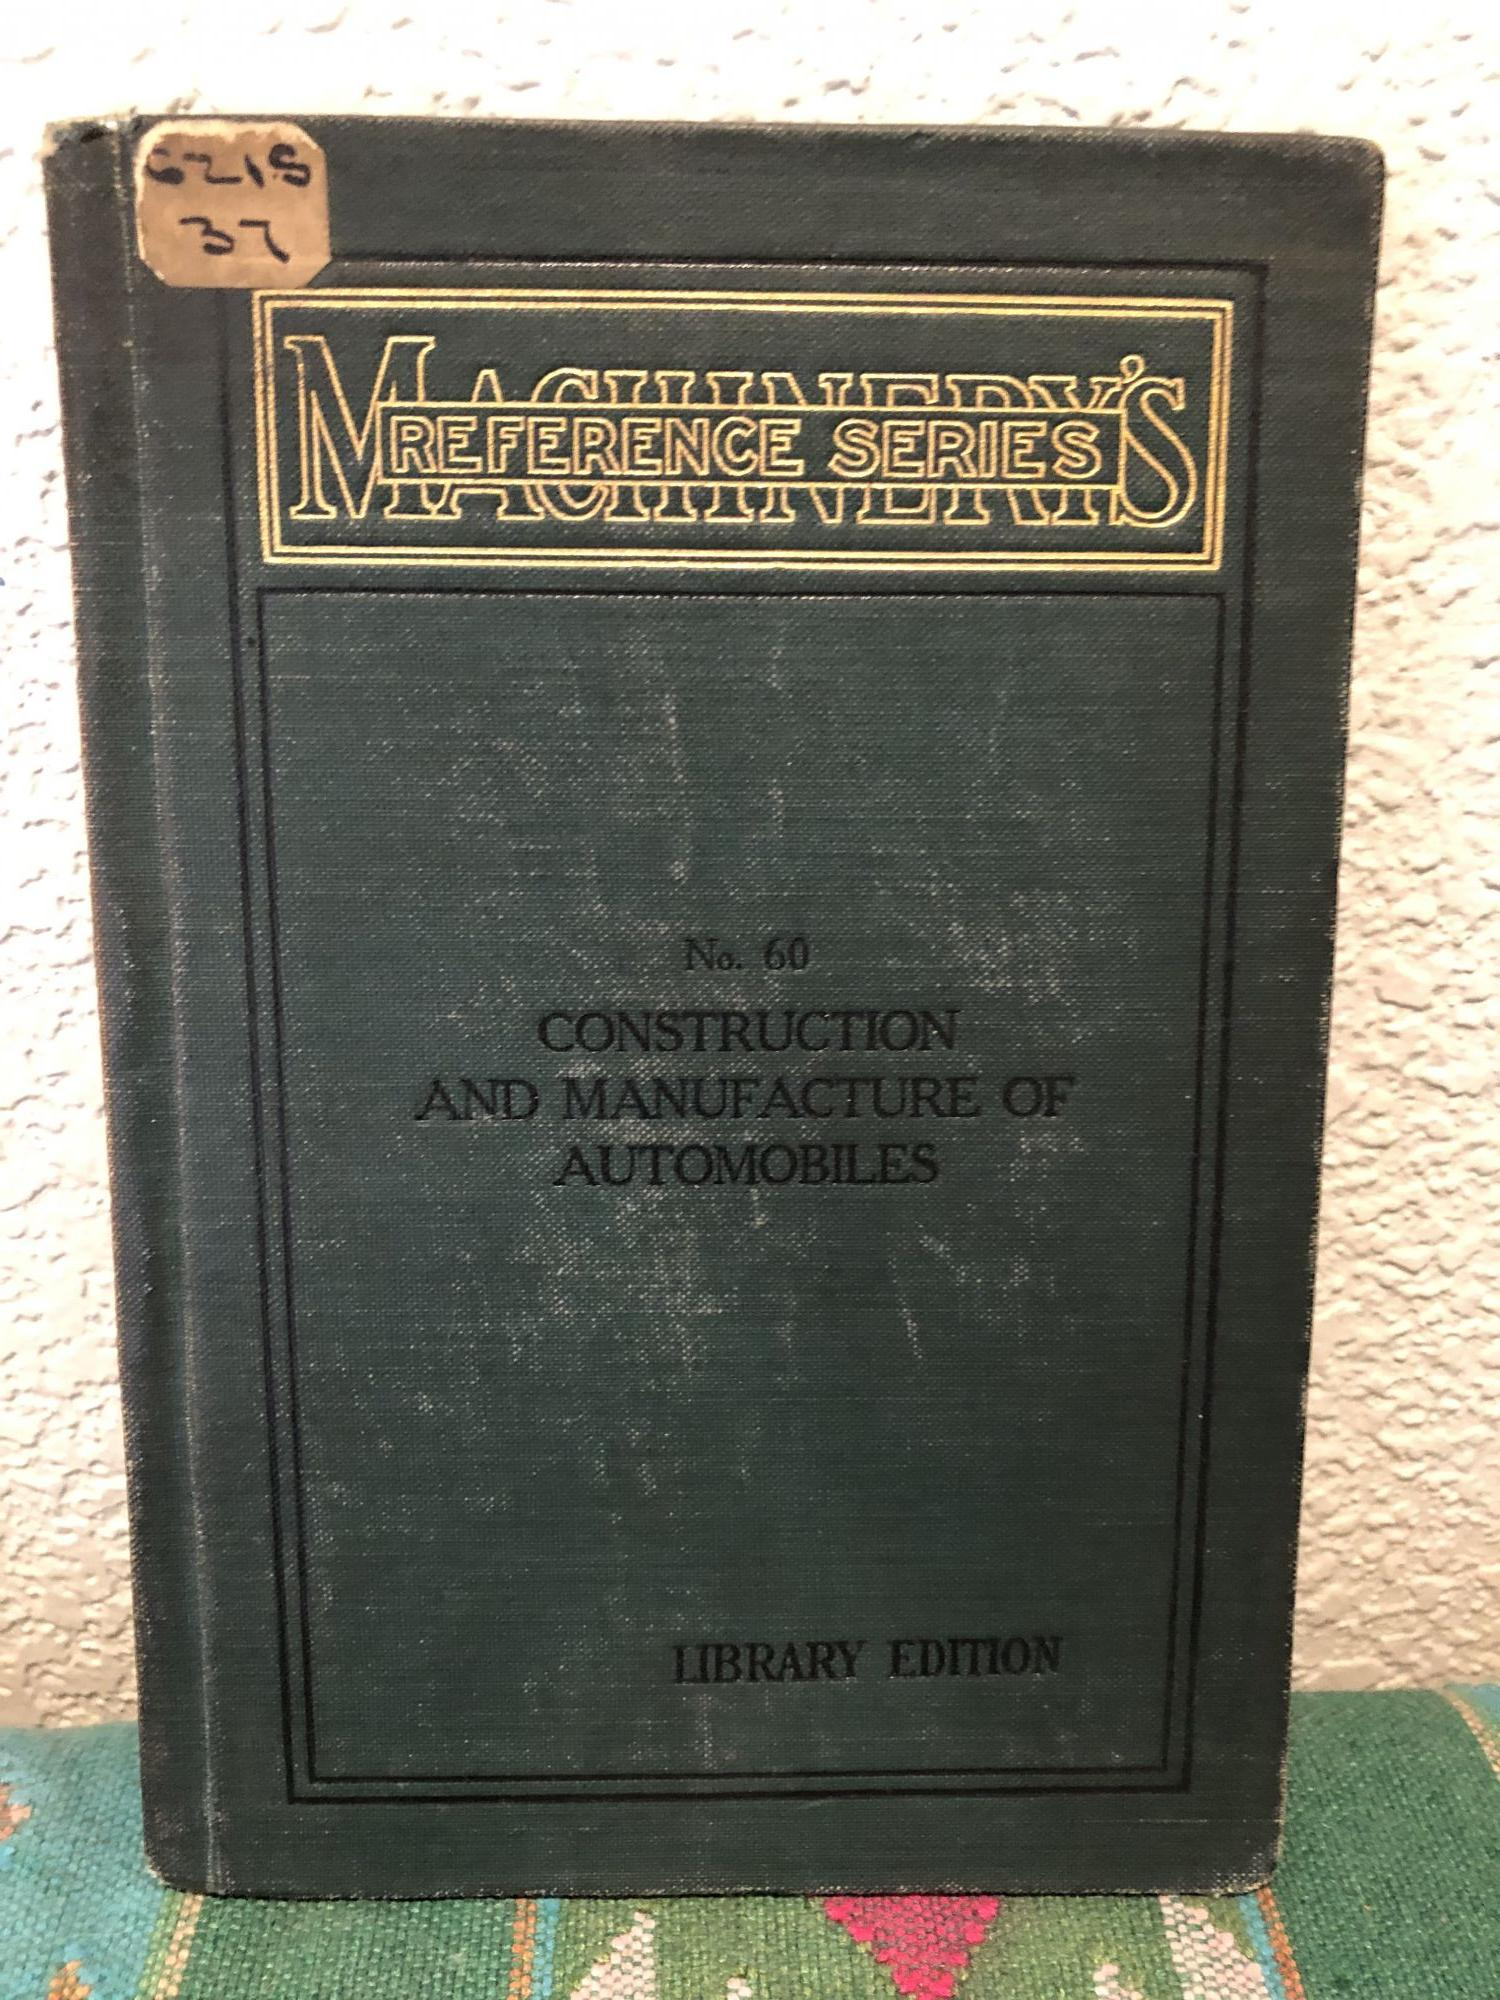 Machinery's Reference Series, Number 60 Construction and Manufacture of Automobiles